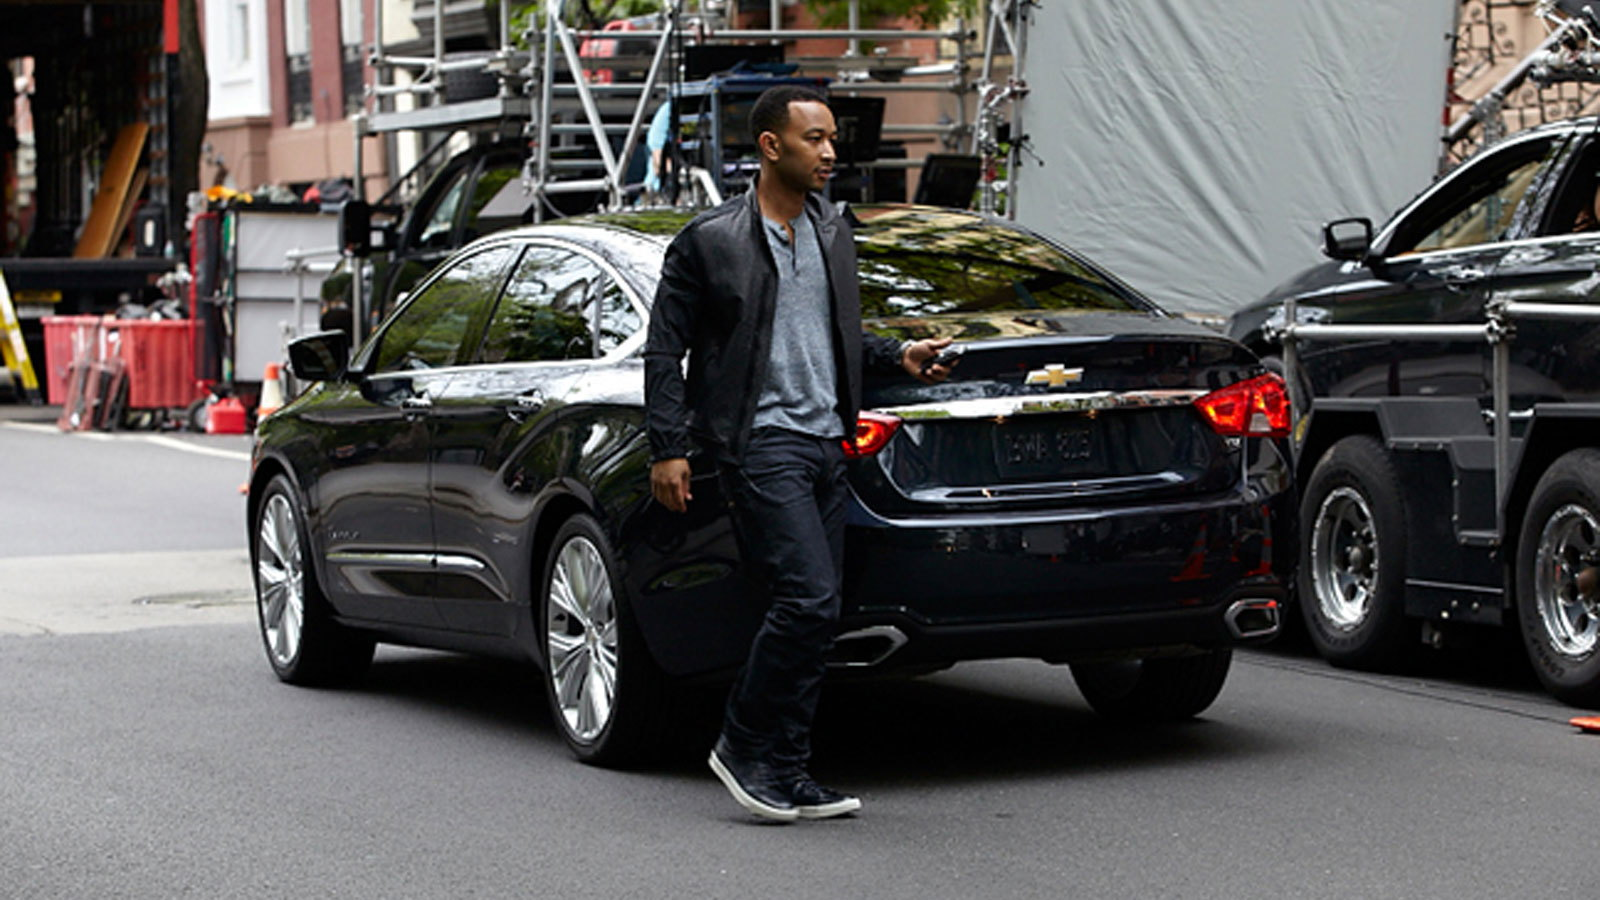 John Legend and the 2014 Chevrolet Impala